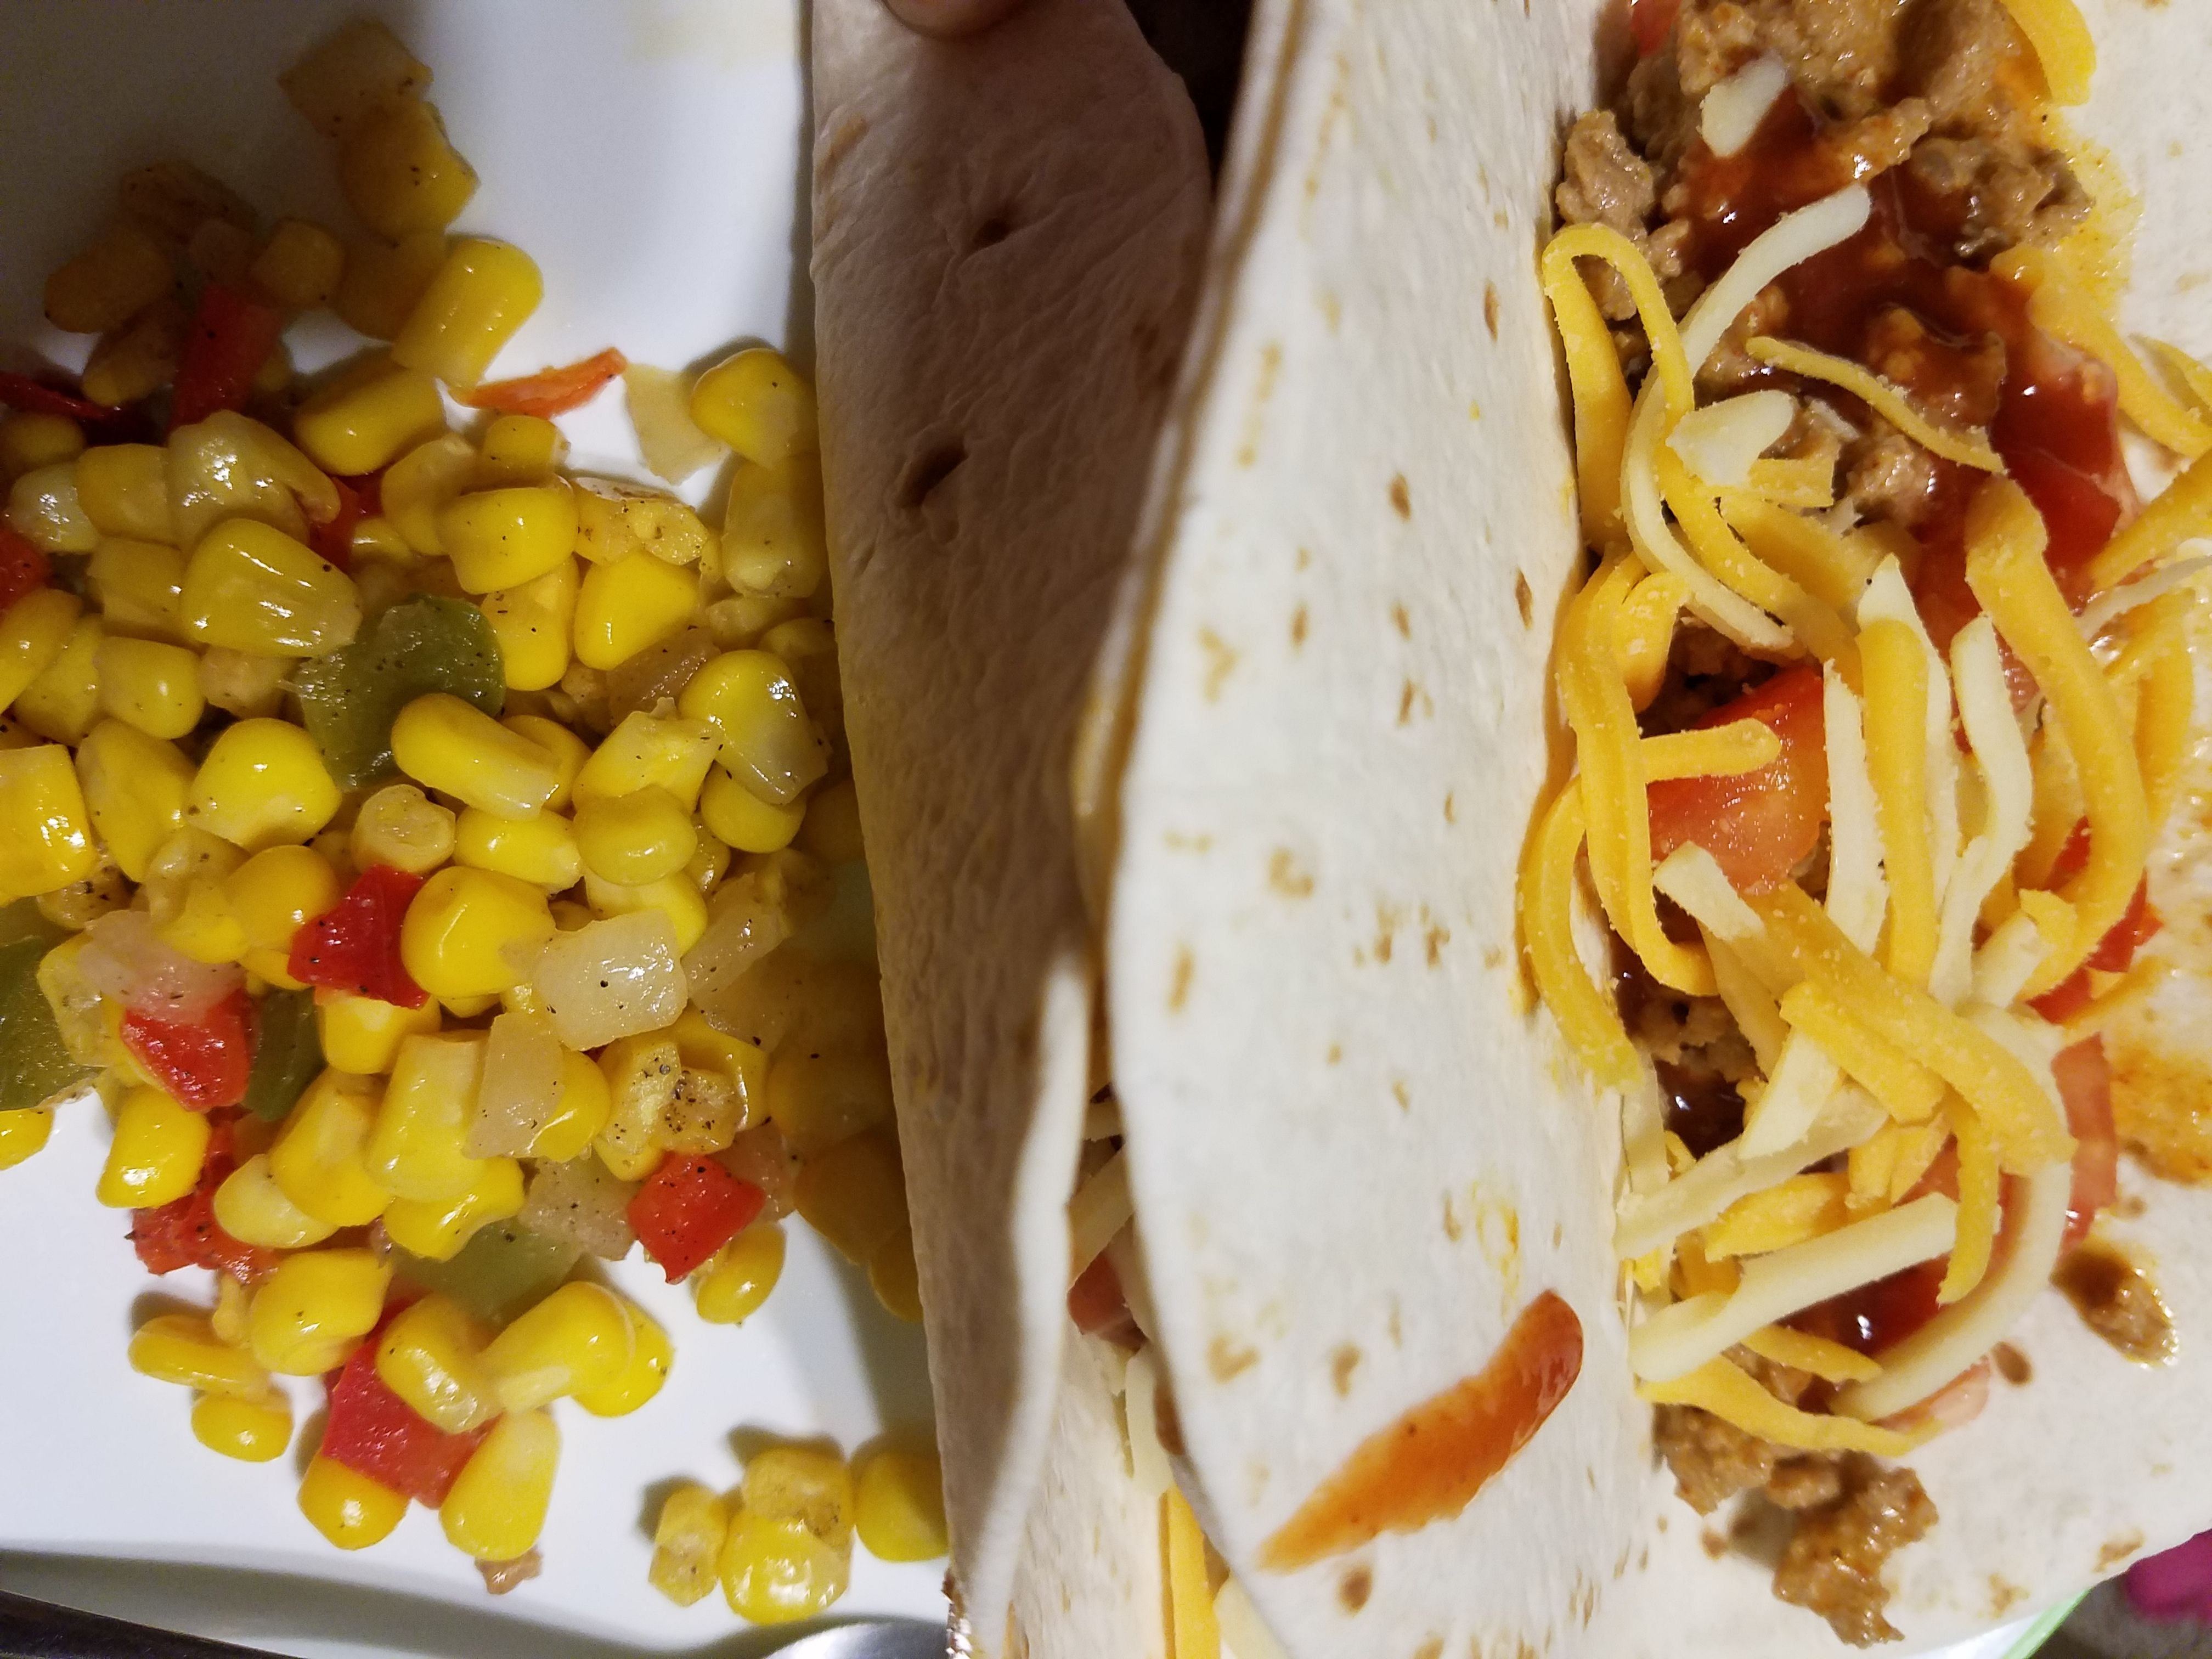 Go Veggie cheese alternatives are great with homemade soft tacos #GoVeggie #GotItFree